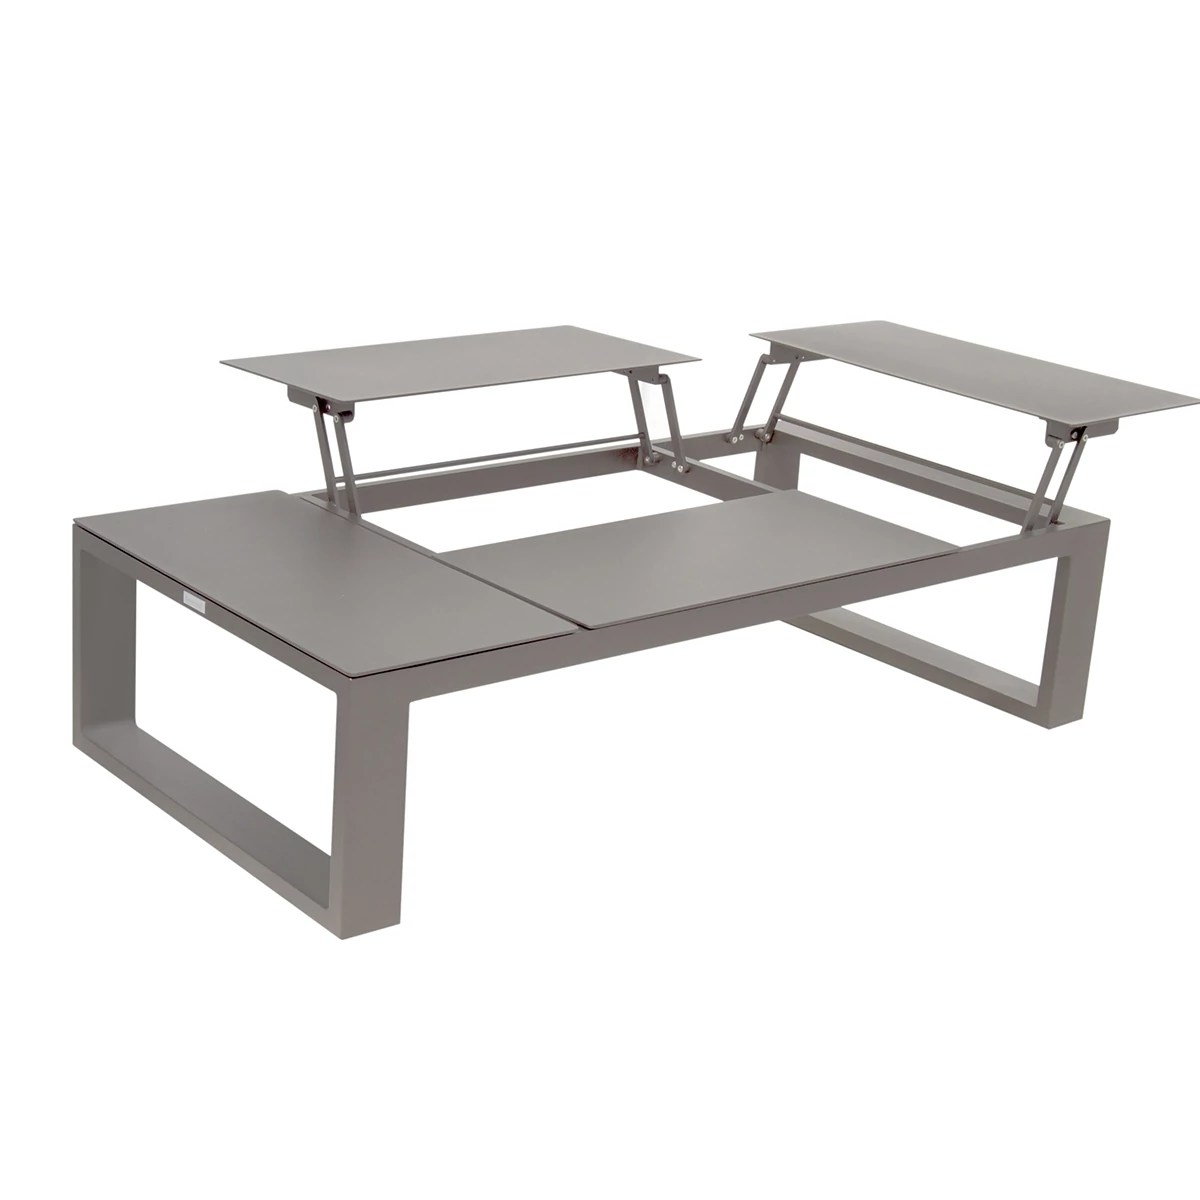 Table Basse Relevable Design Table Basse Avec Plateau Relevable Zendart Outdoor